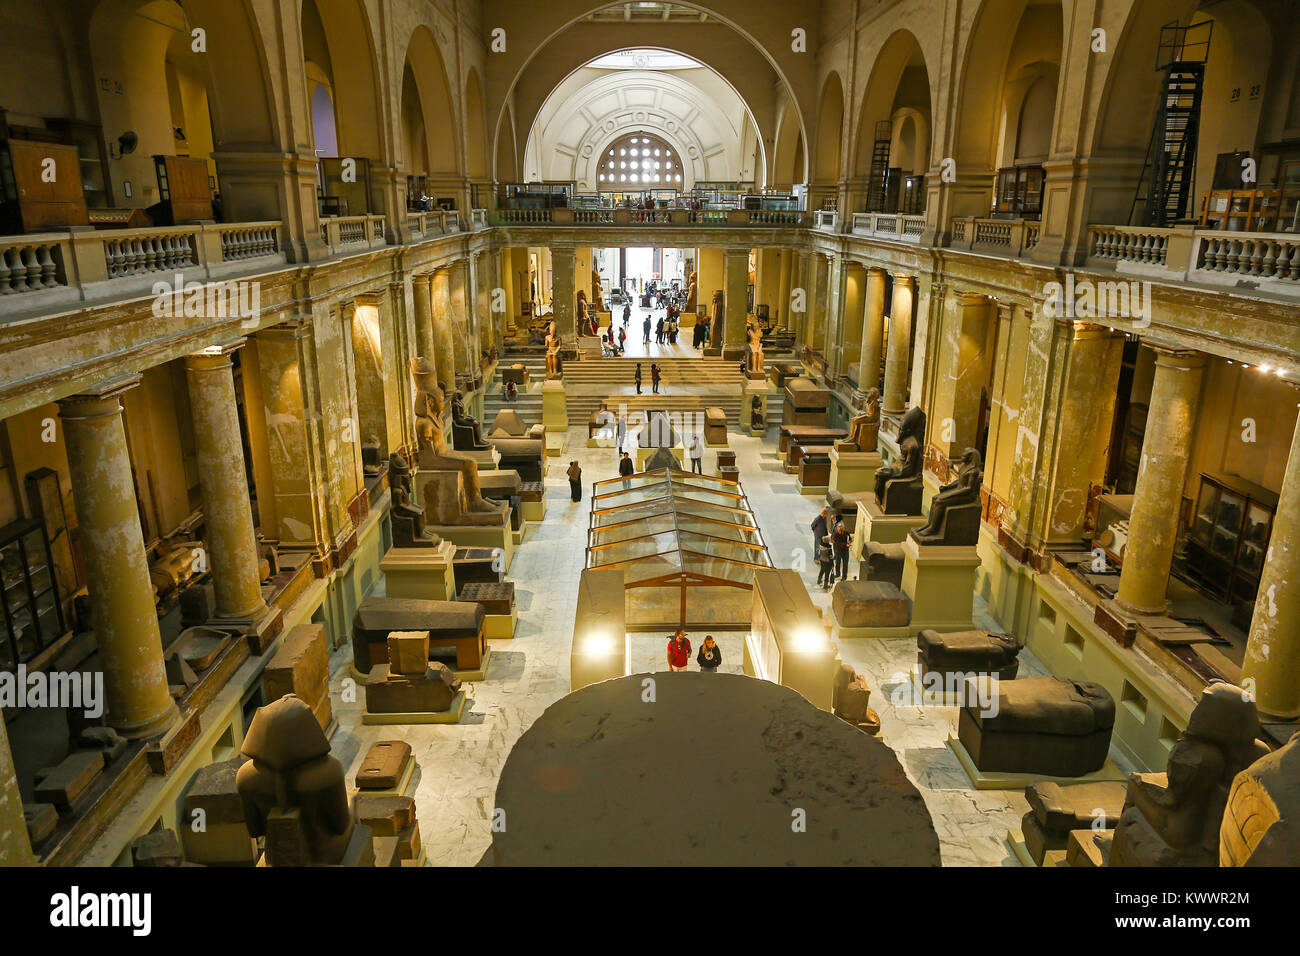 People looking at the artefacts on display inside the central hall of the Egyptian Museum of Antiquities, Cairo, - Stock Image